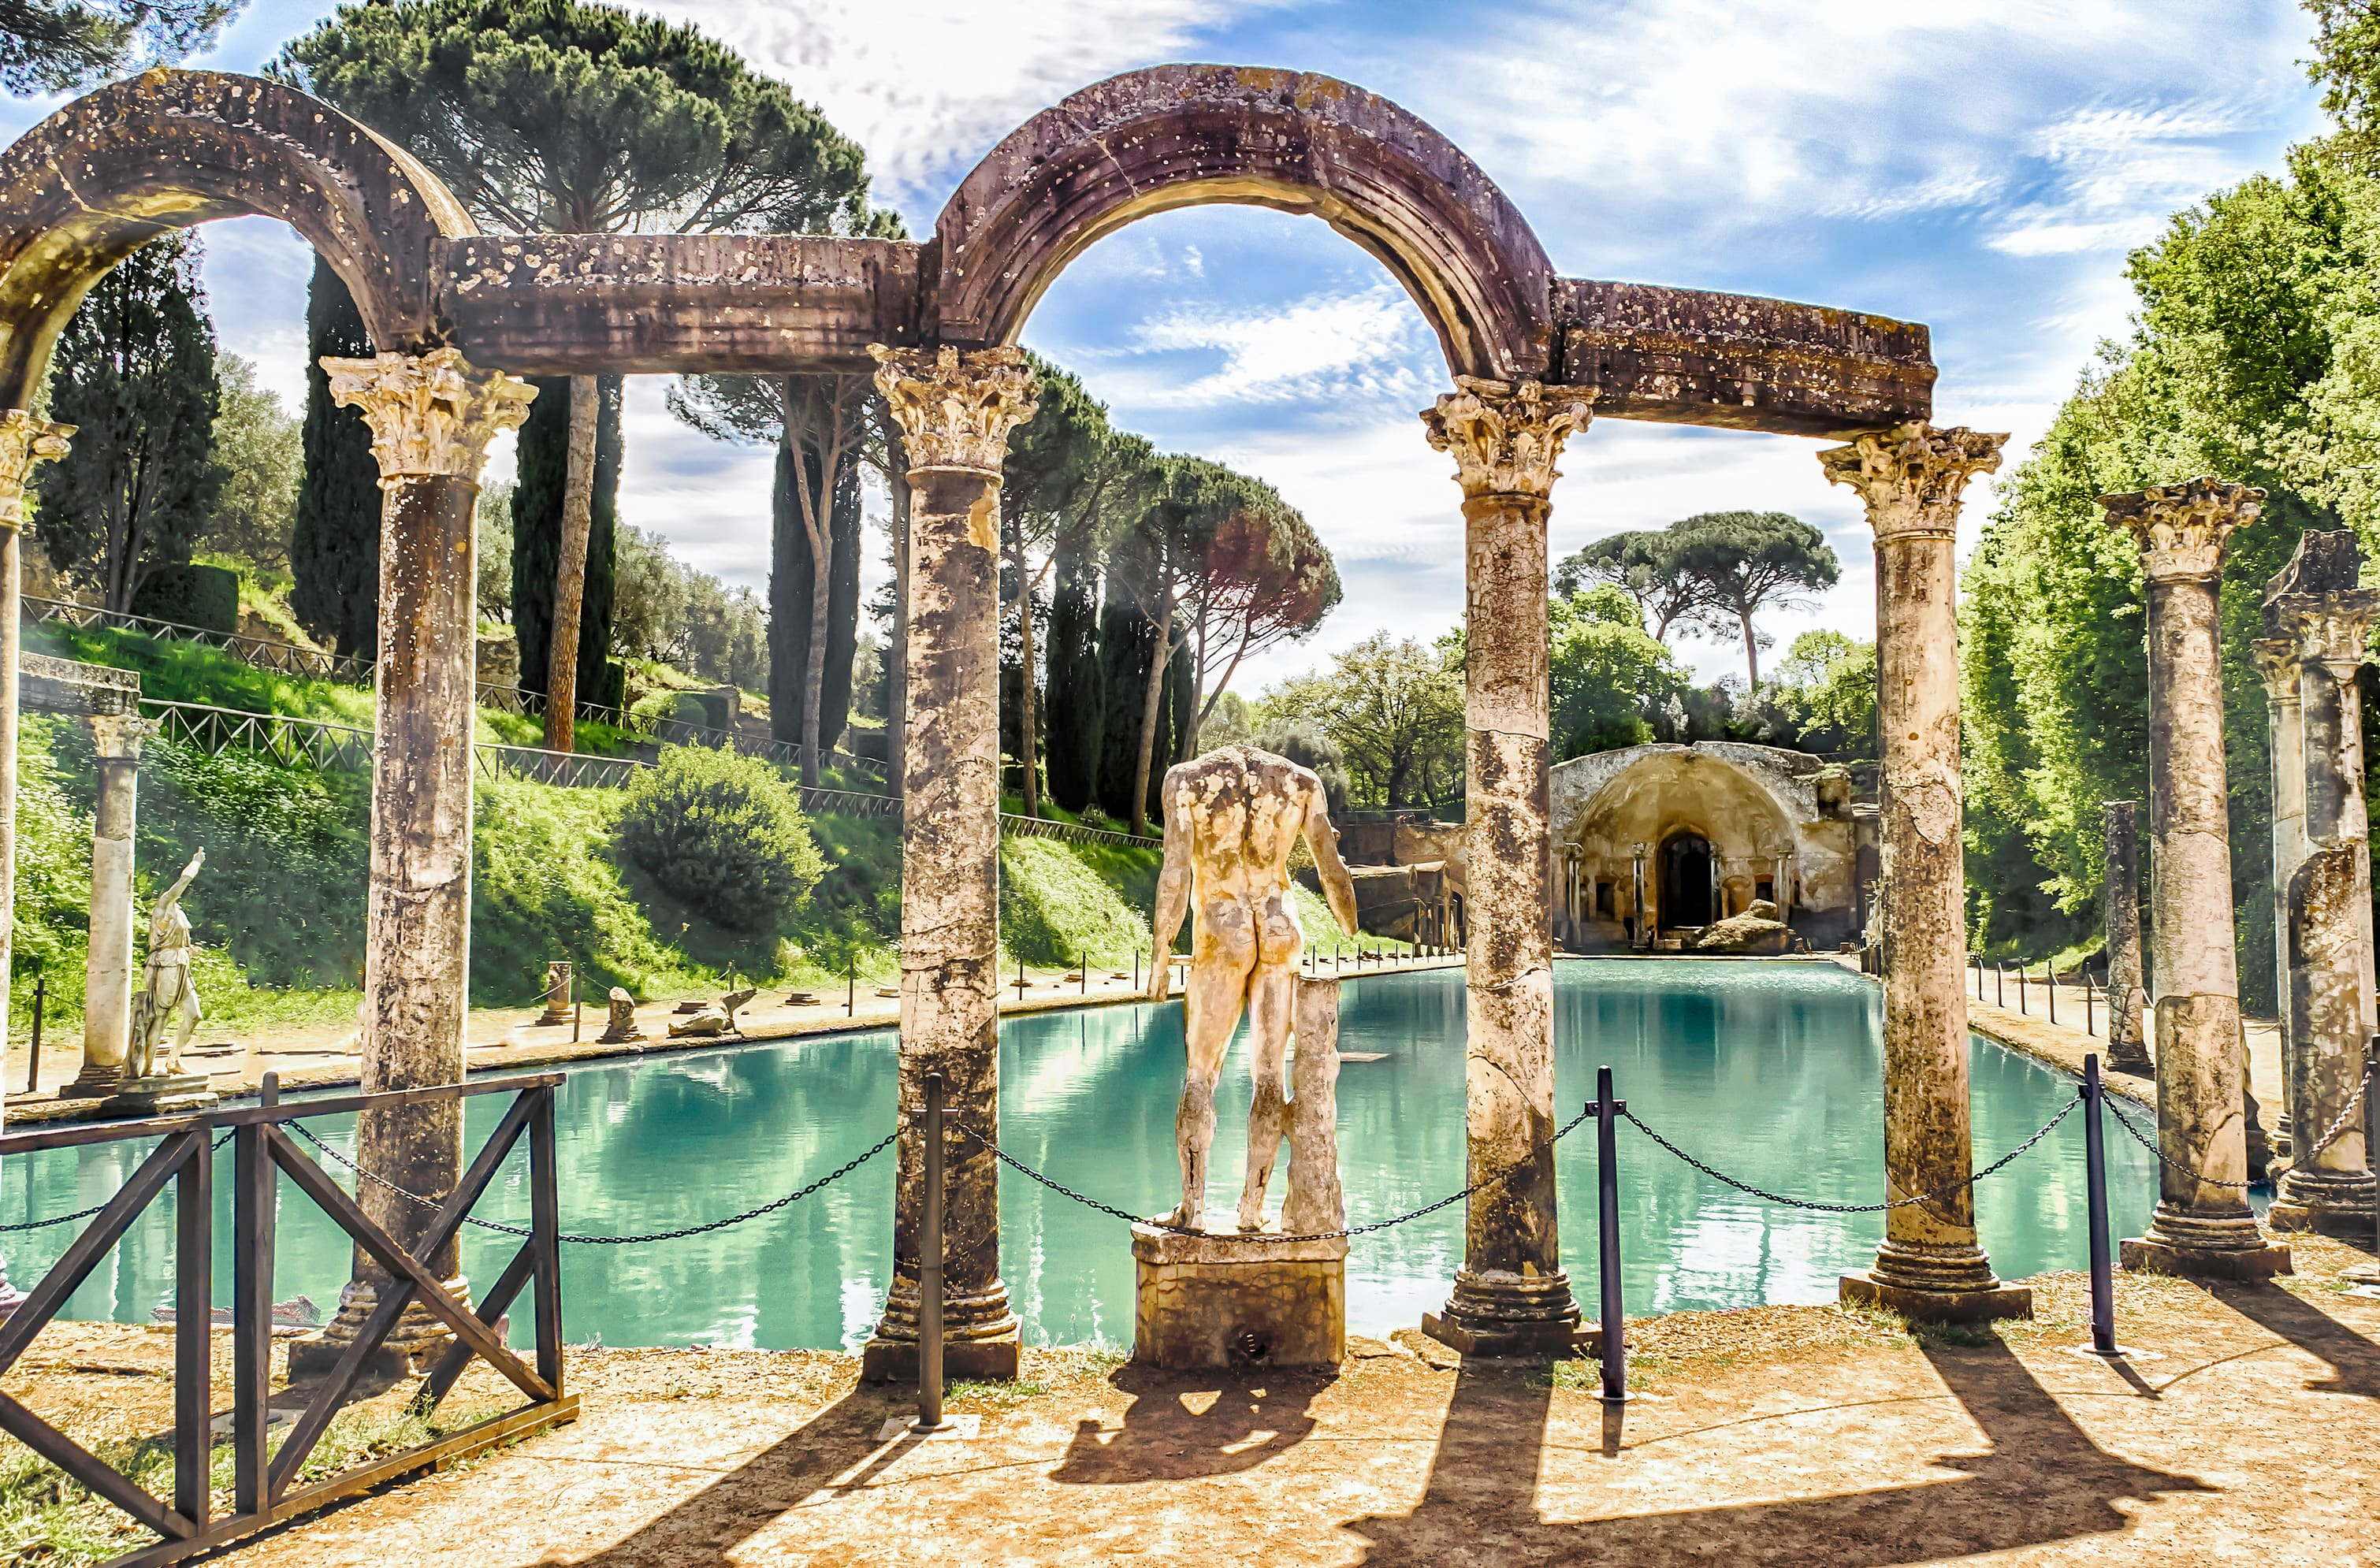 What's there to see in Lazio's town of Tivoli